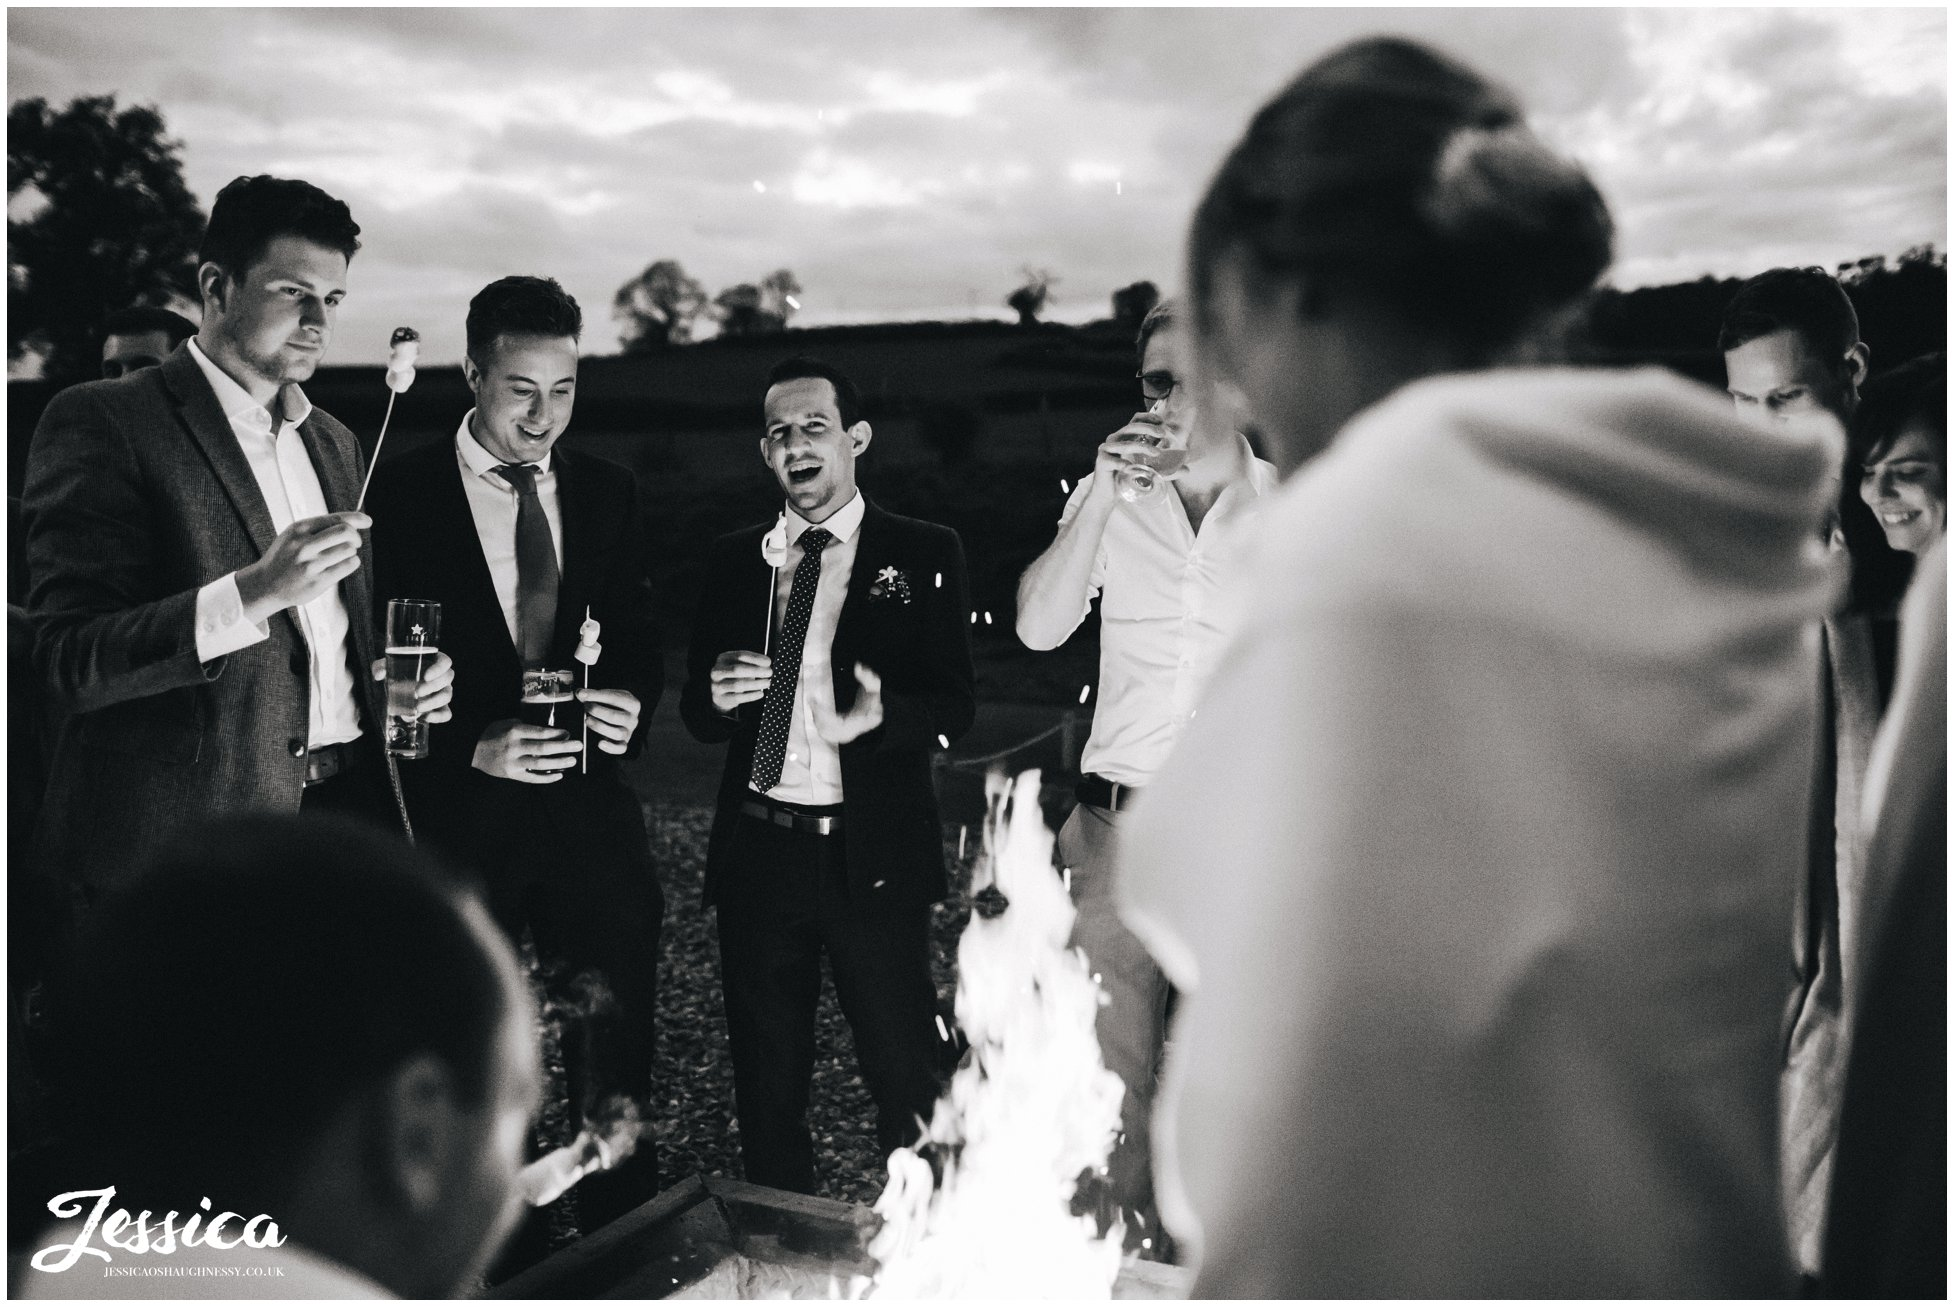 guests toast marshmallows round the fire